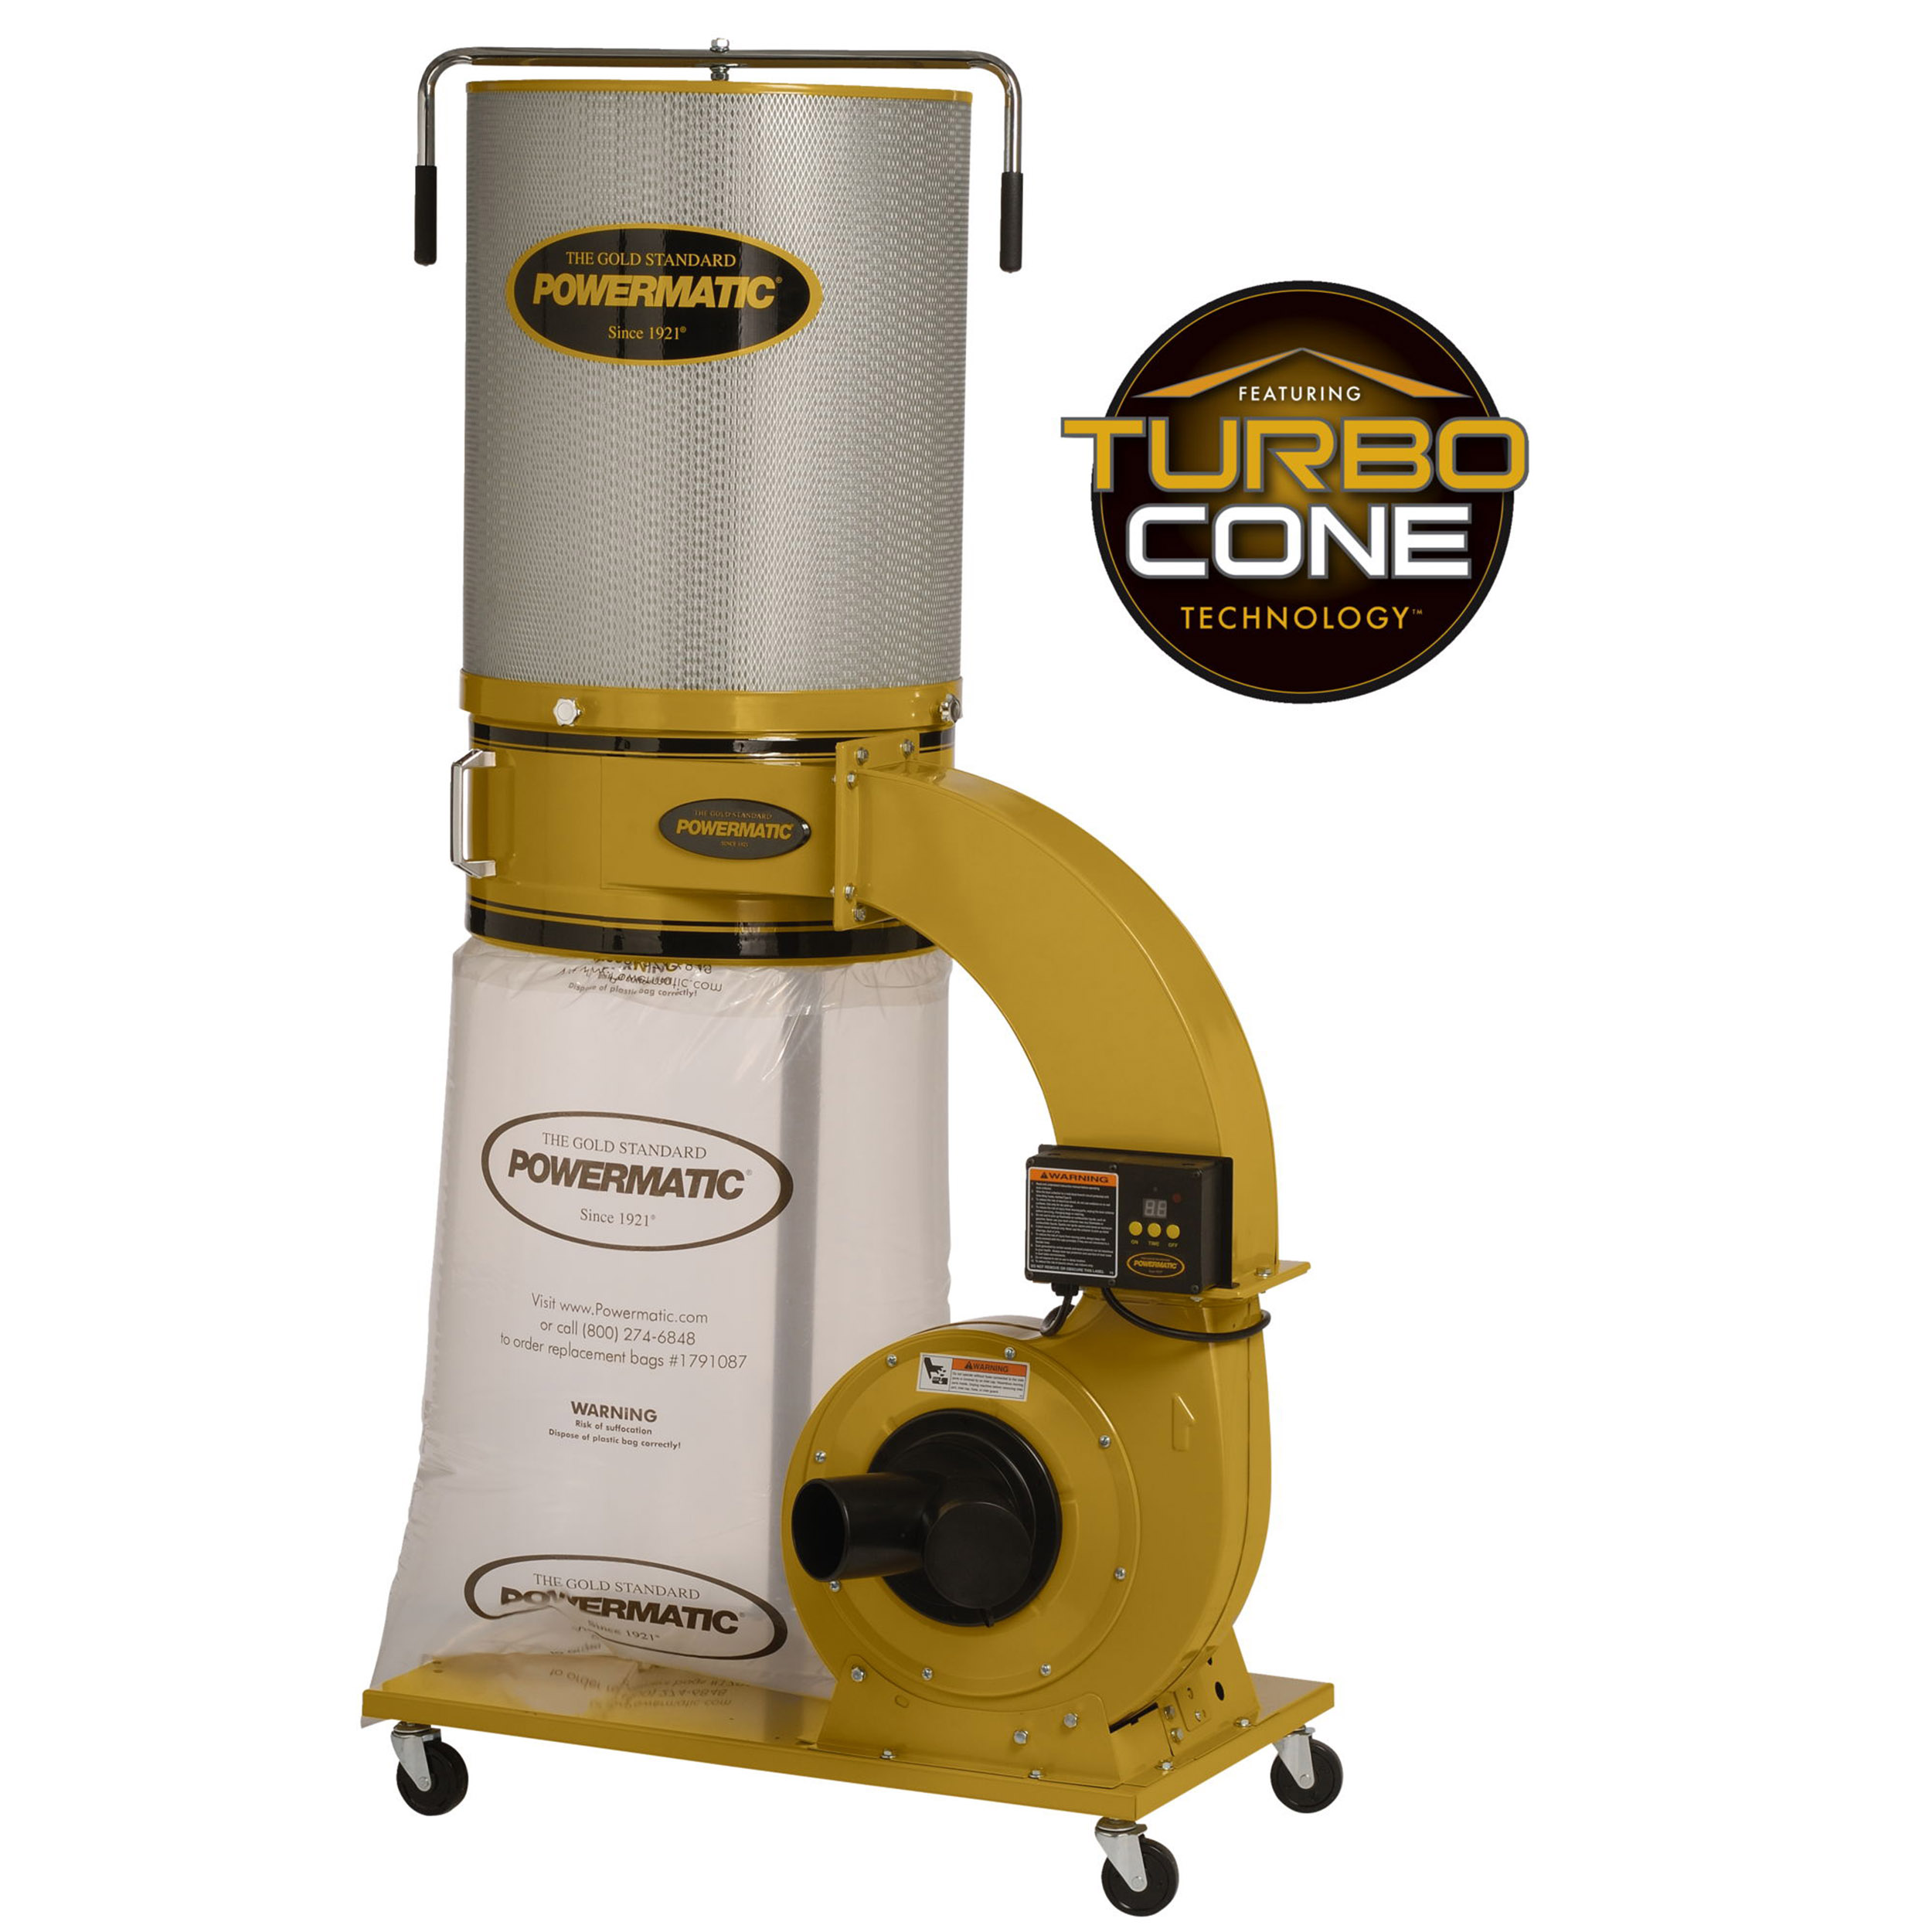 TurboCone Dust Collector, 1.75HP 1PH 115/230V, 2-Micron Canister Kit, Model PM1300TX-CK